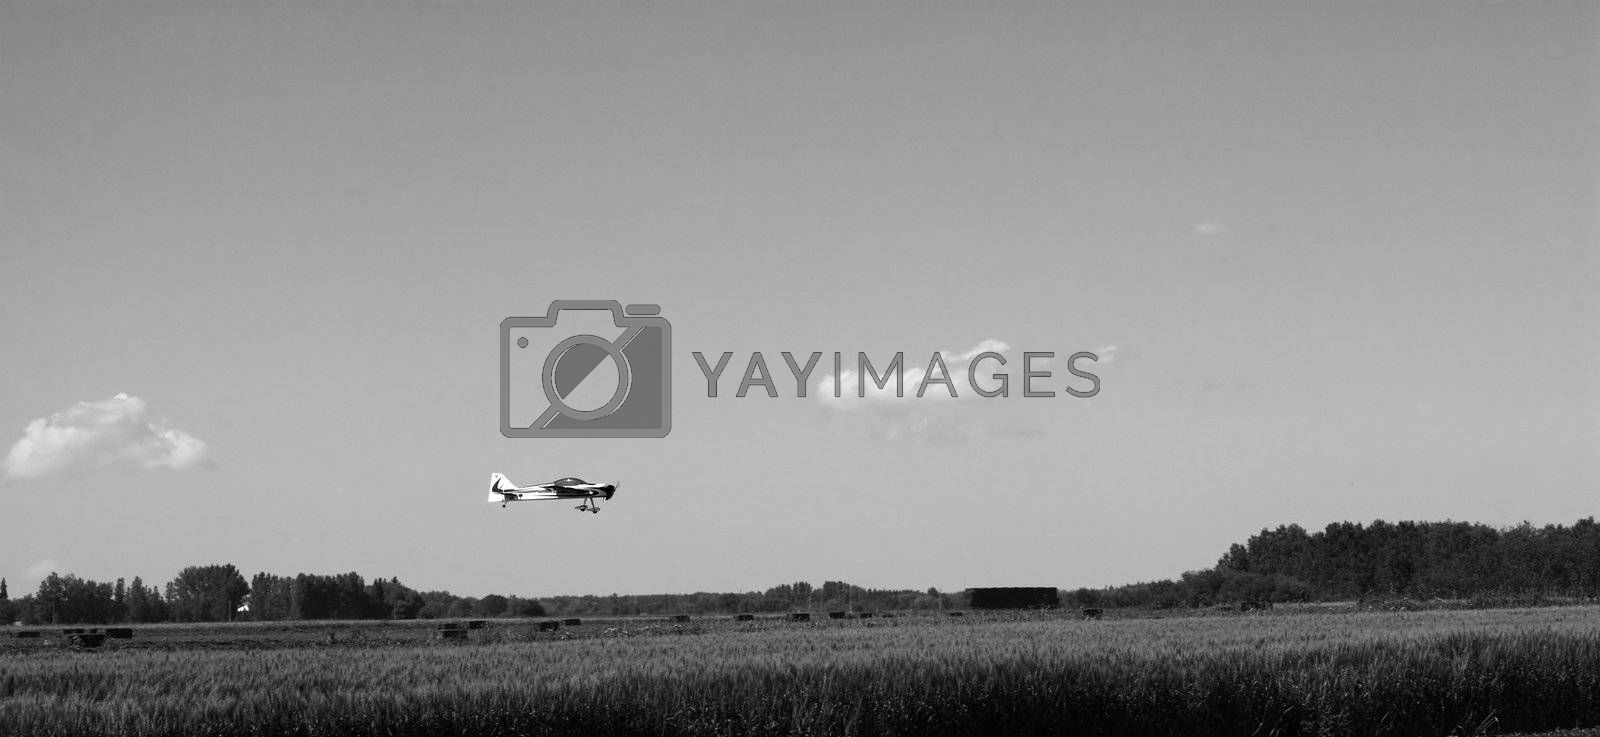 A small remote controlled plane landing in a field